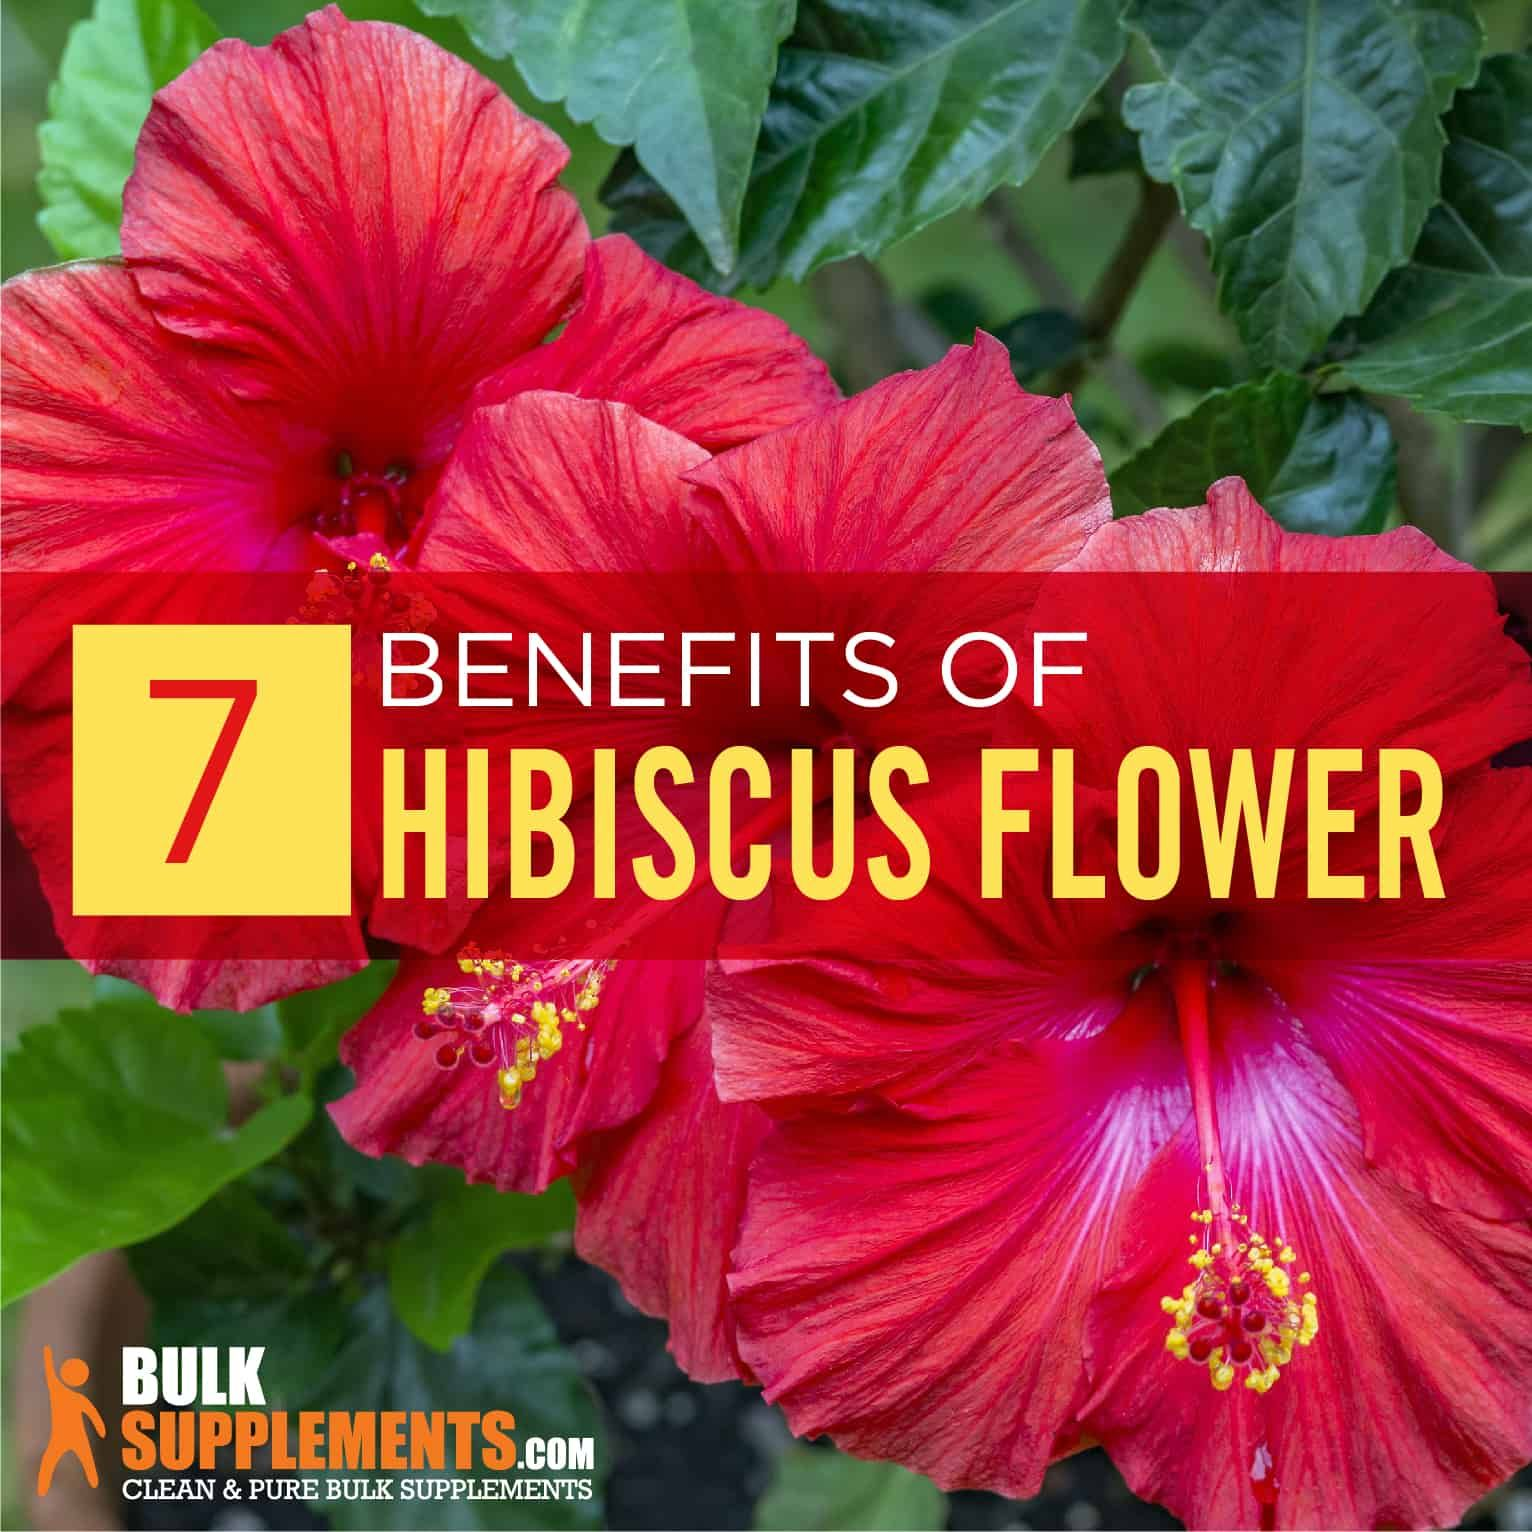 Hibiscus Flower Benefits Side Effects Dosage Bulksupplements Com In 2020 Hibiscus Flowers Reduce Cholesterol Hibiscus